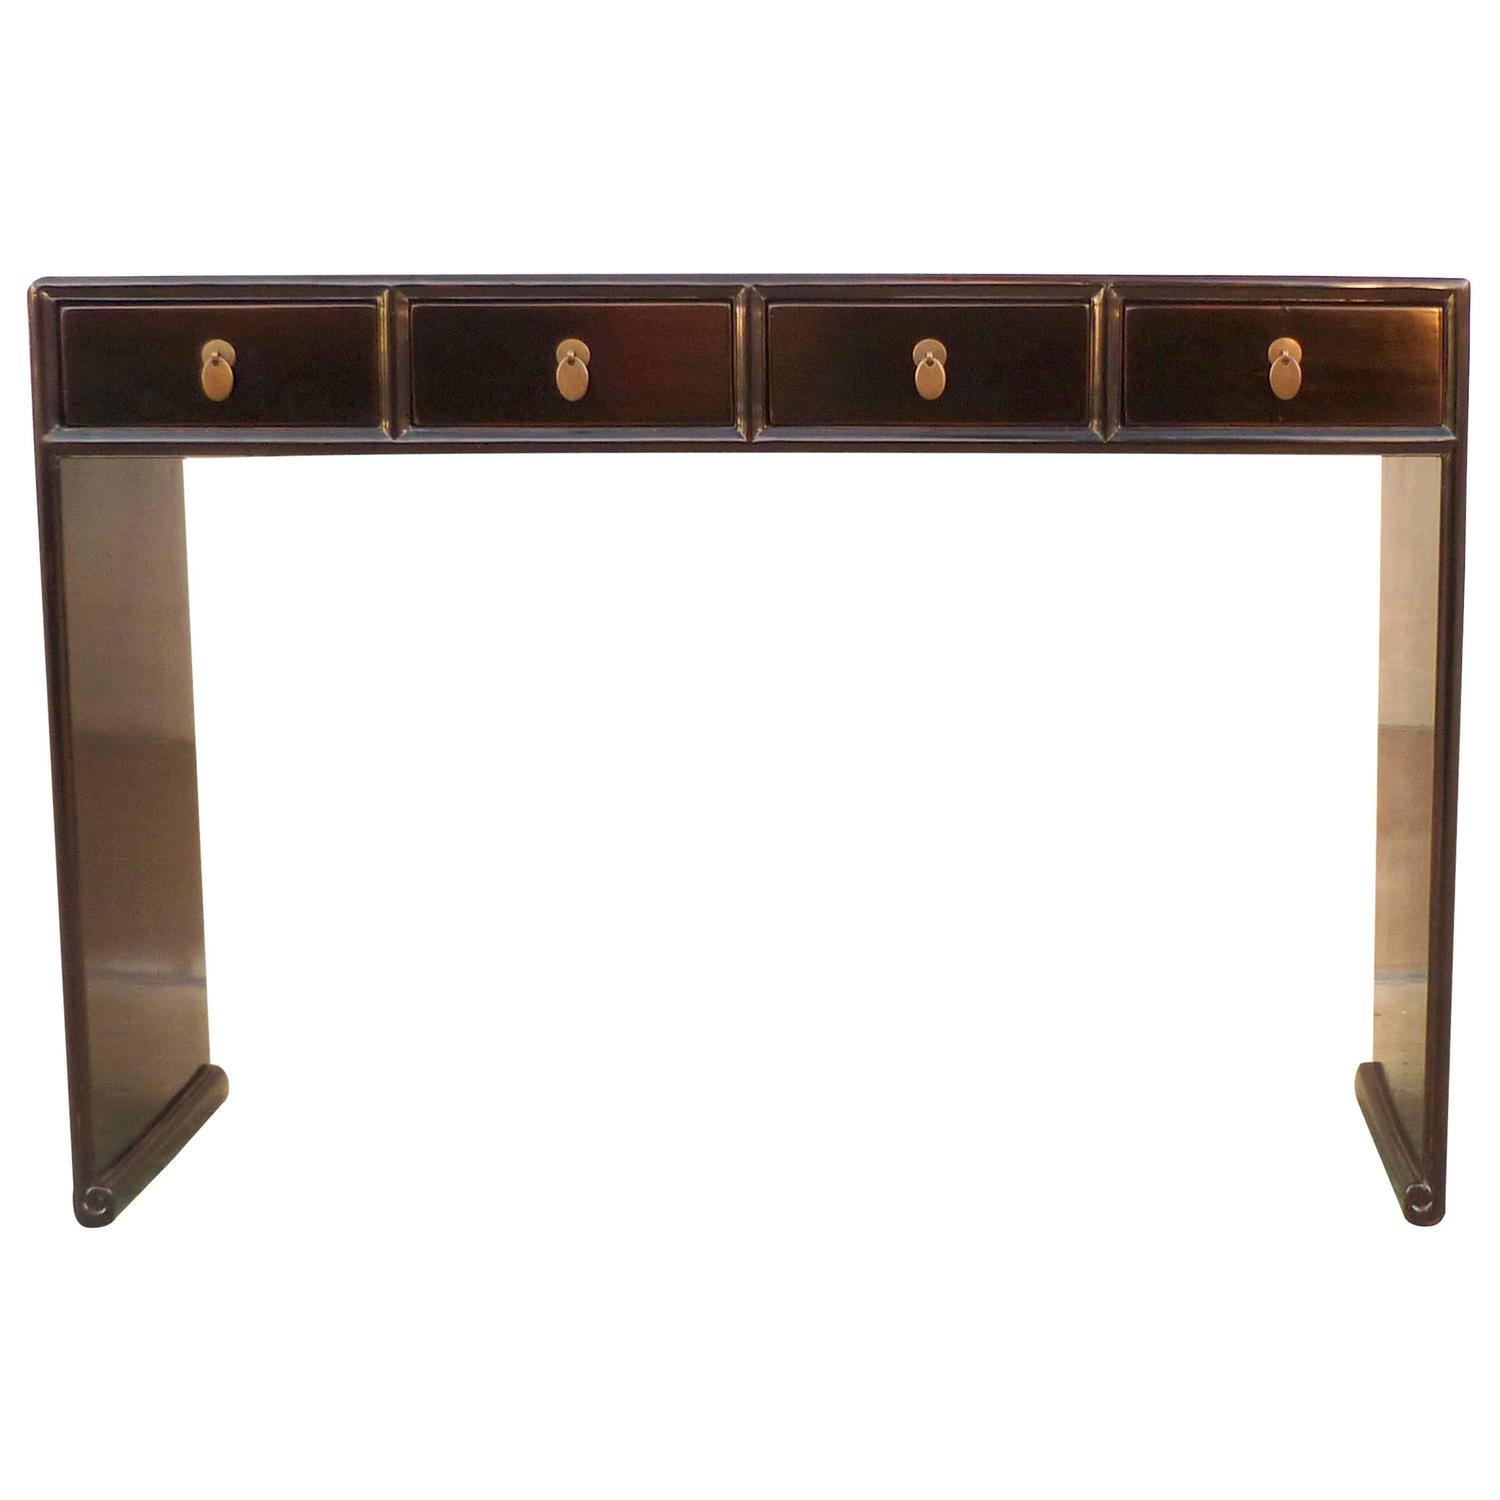 black lacquer sofa table ralph lauren fabric fine console with four drawers at 1stdibs